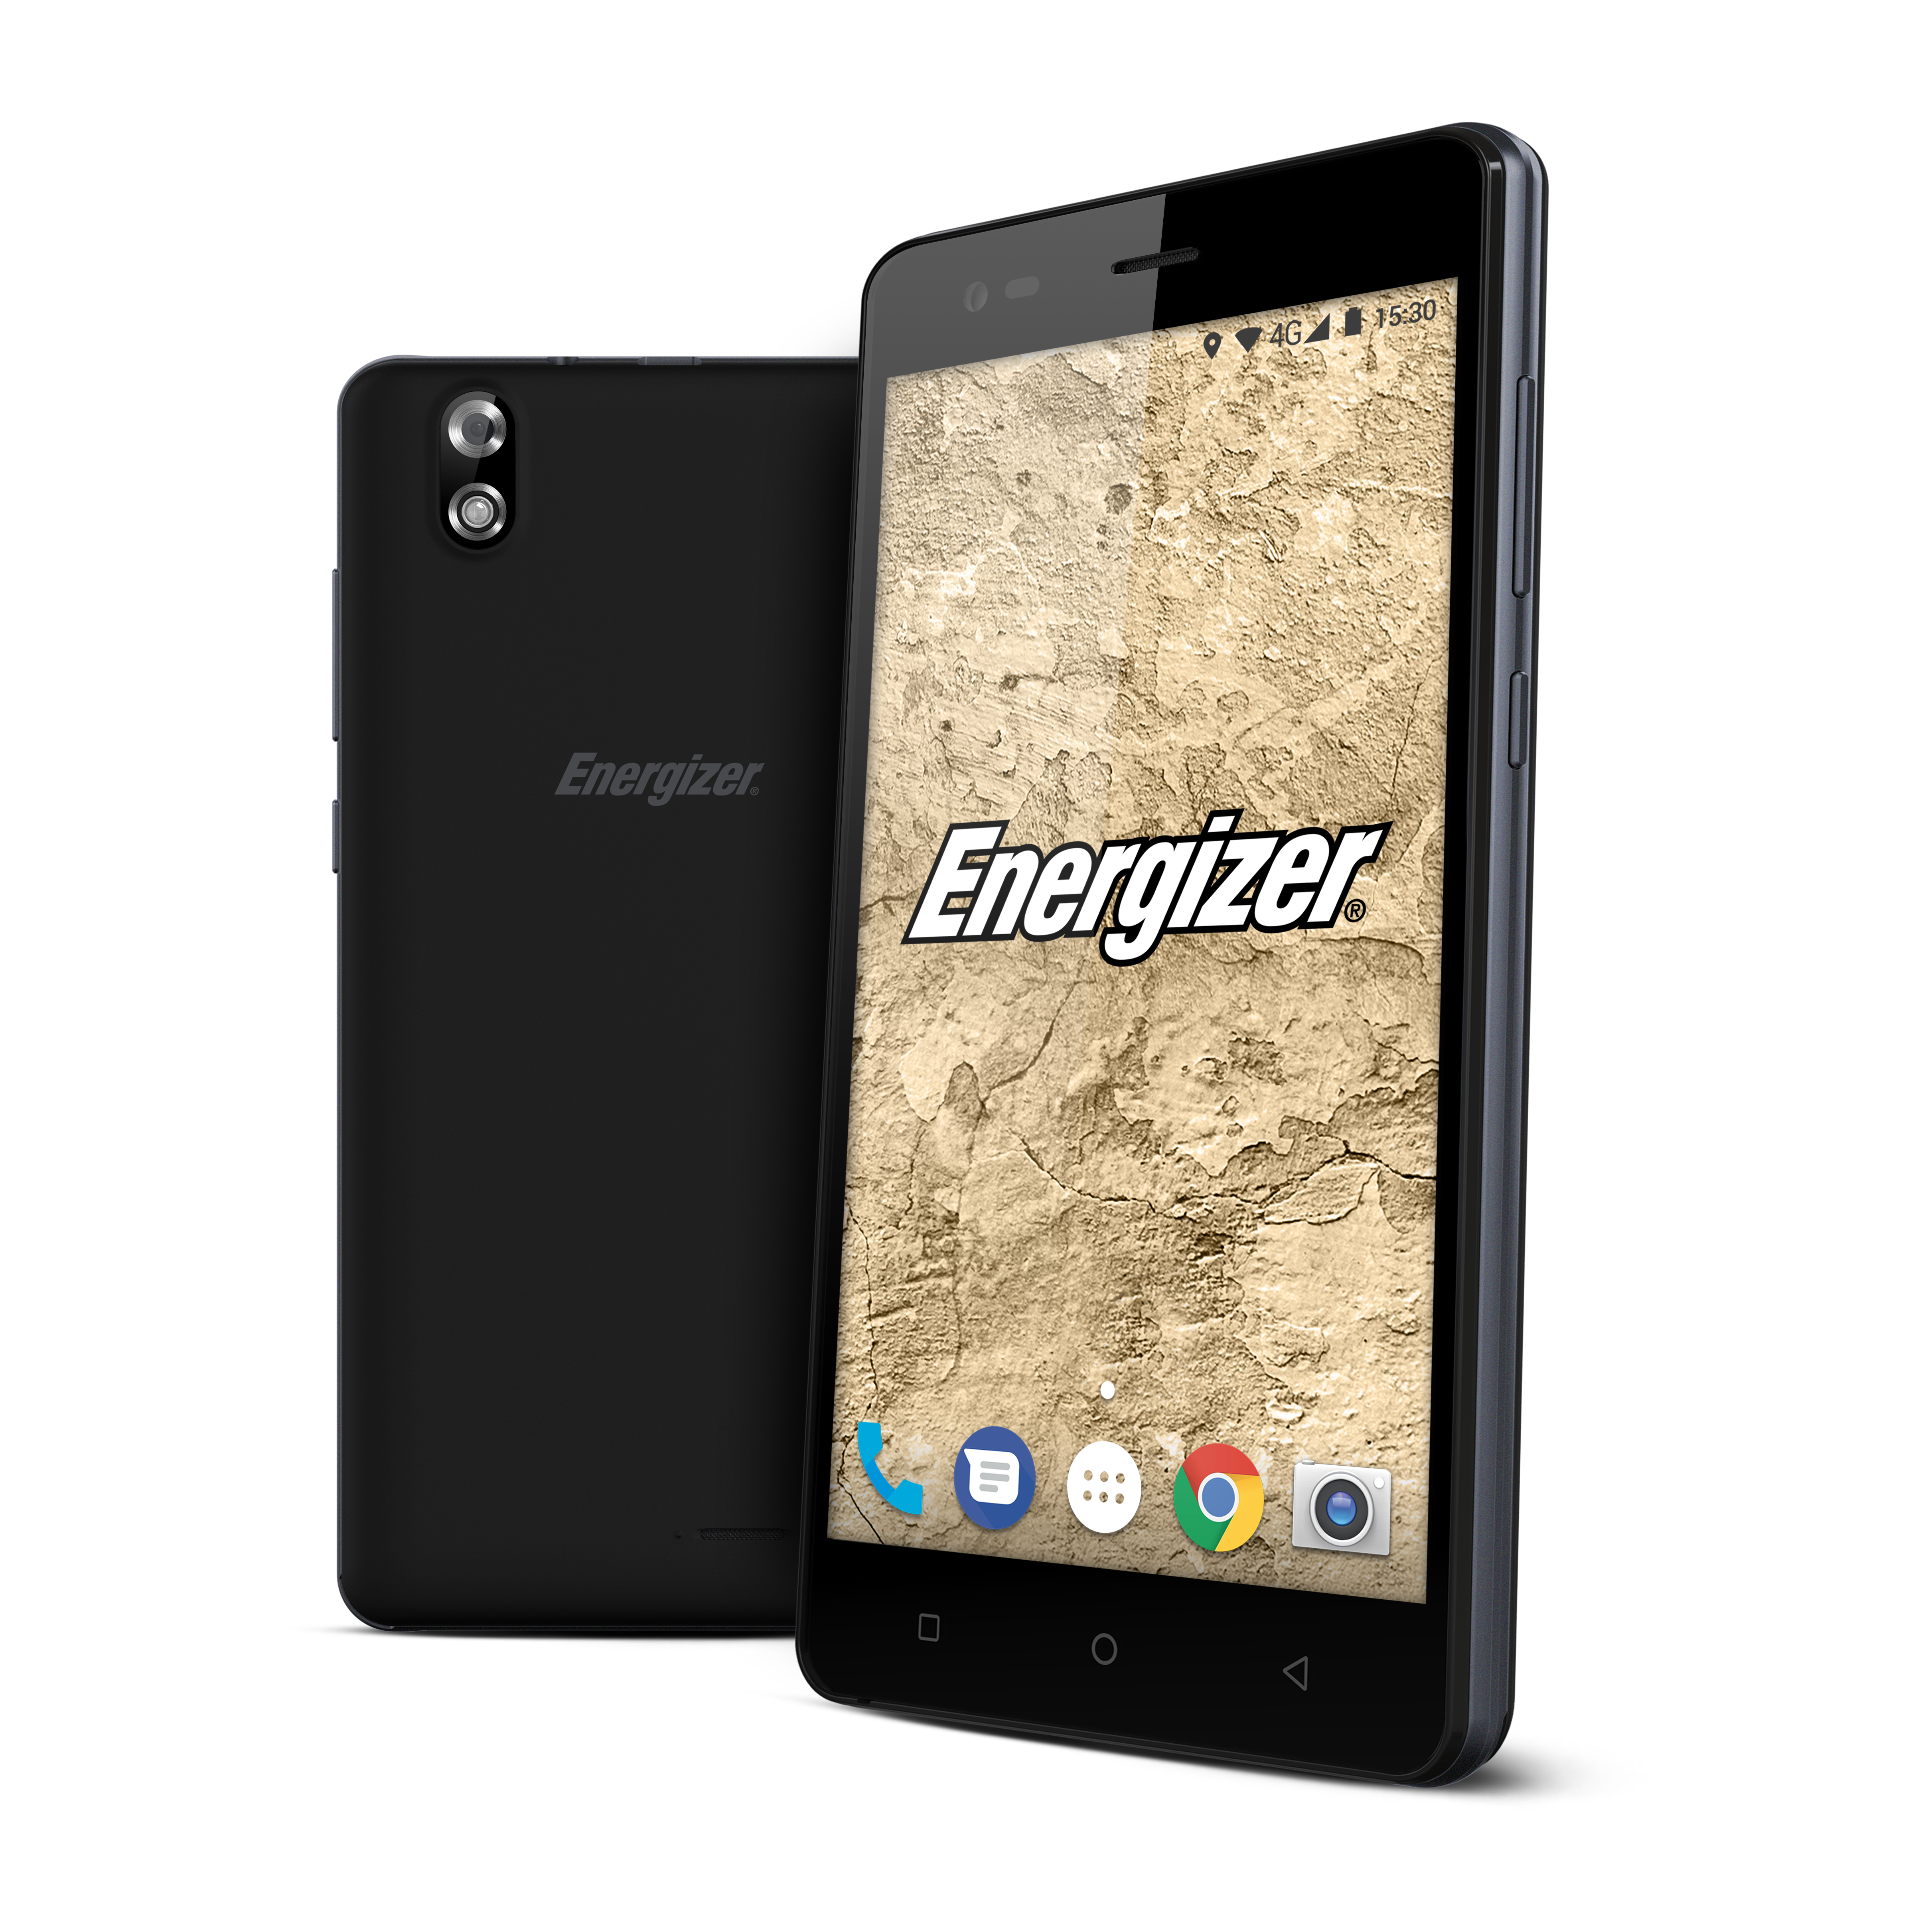 Energizer's new Energy S550 smartphone (Energizer)